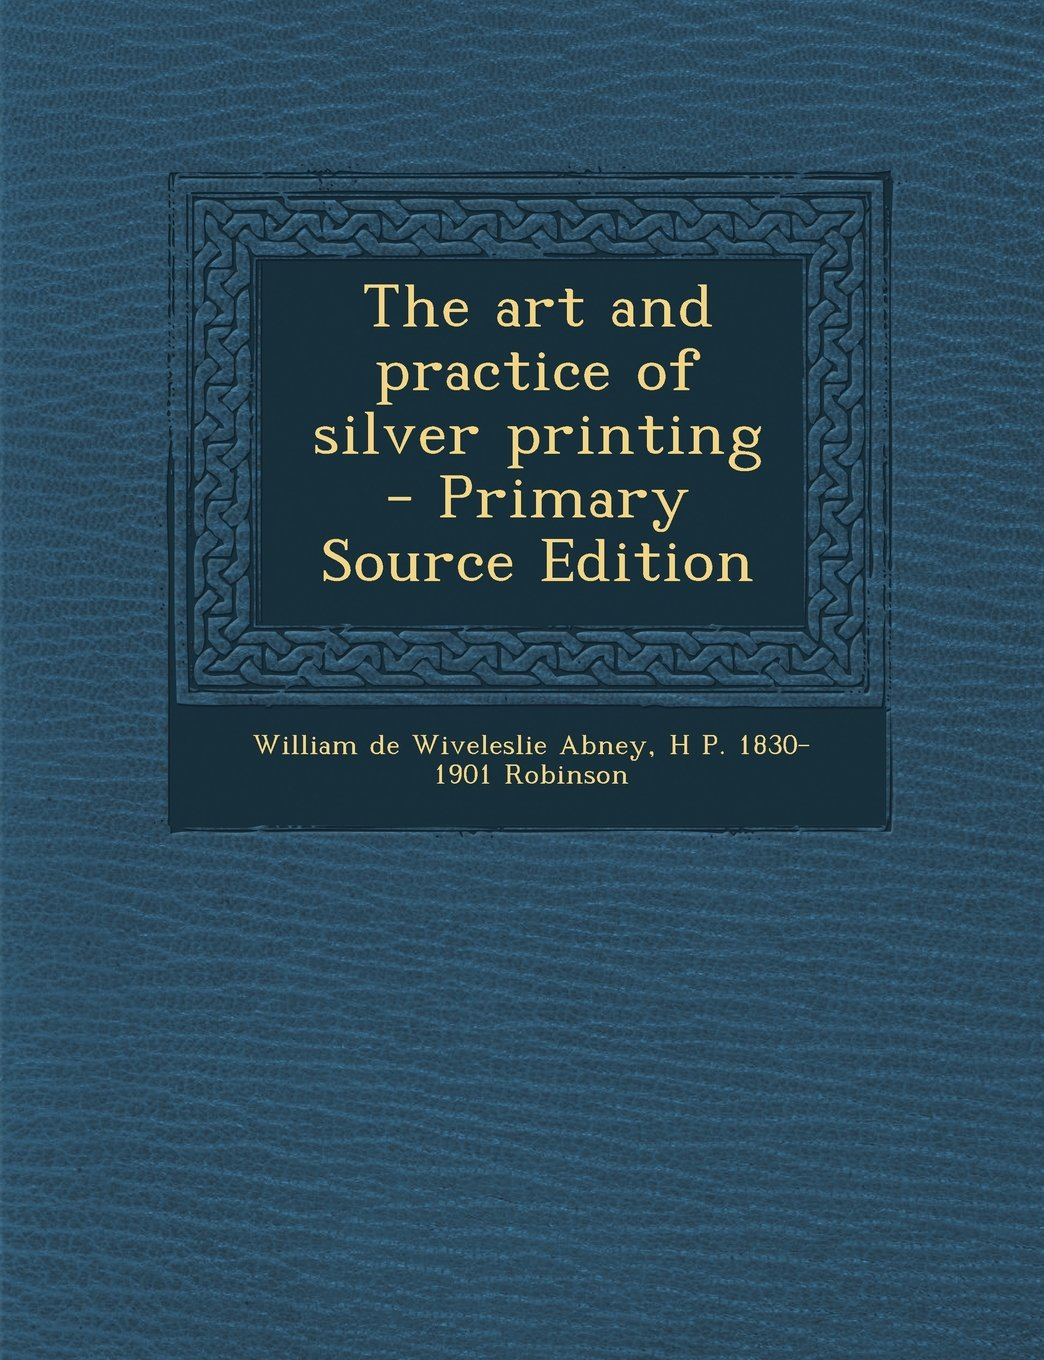 The art and practice of silver printing ebook